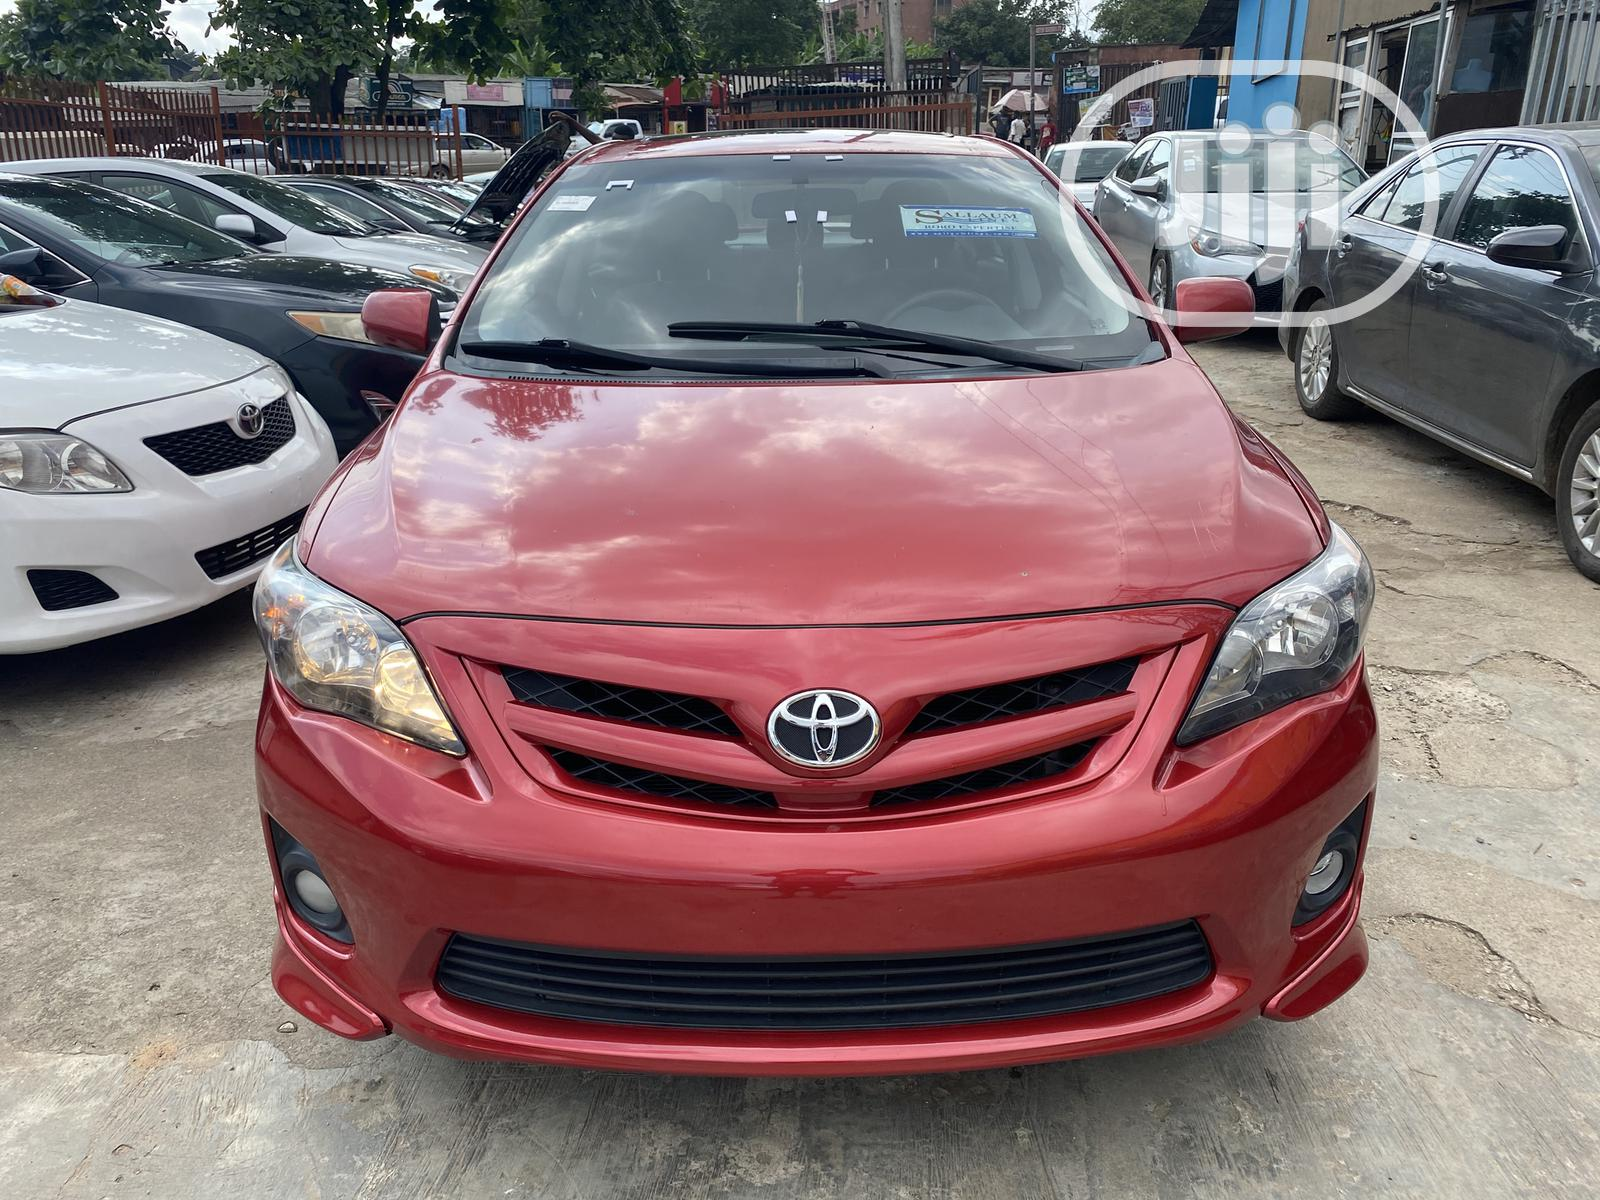 Toyota Corolla 2012 Red In Magodo Cars Shogo Global Autos Jiji Ng For Sale In Magodo Buy Cars From Shogo Global Autos On Jiji Ng